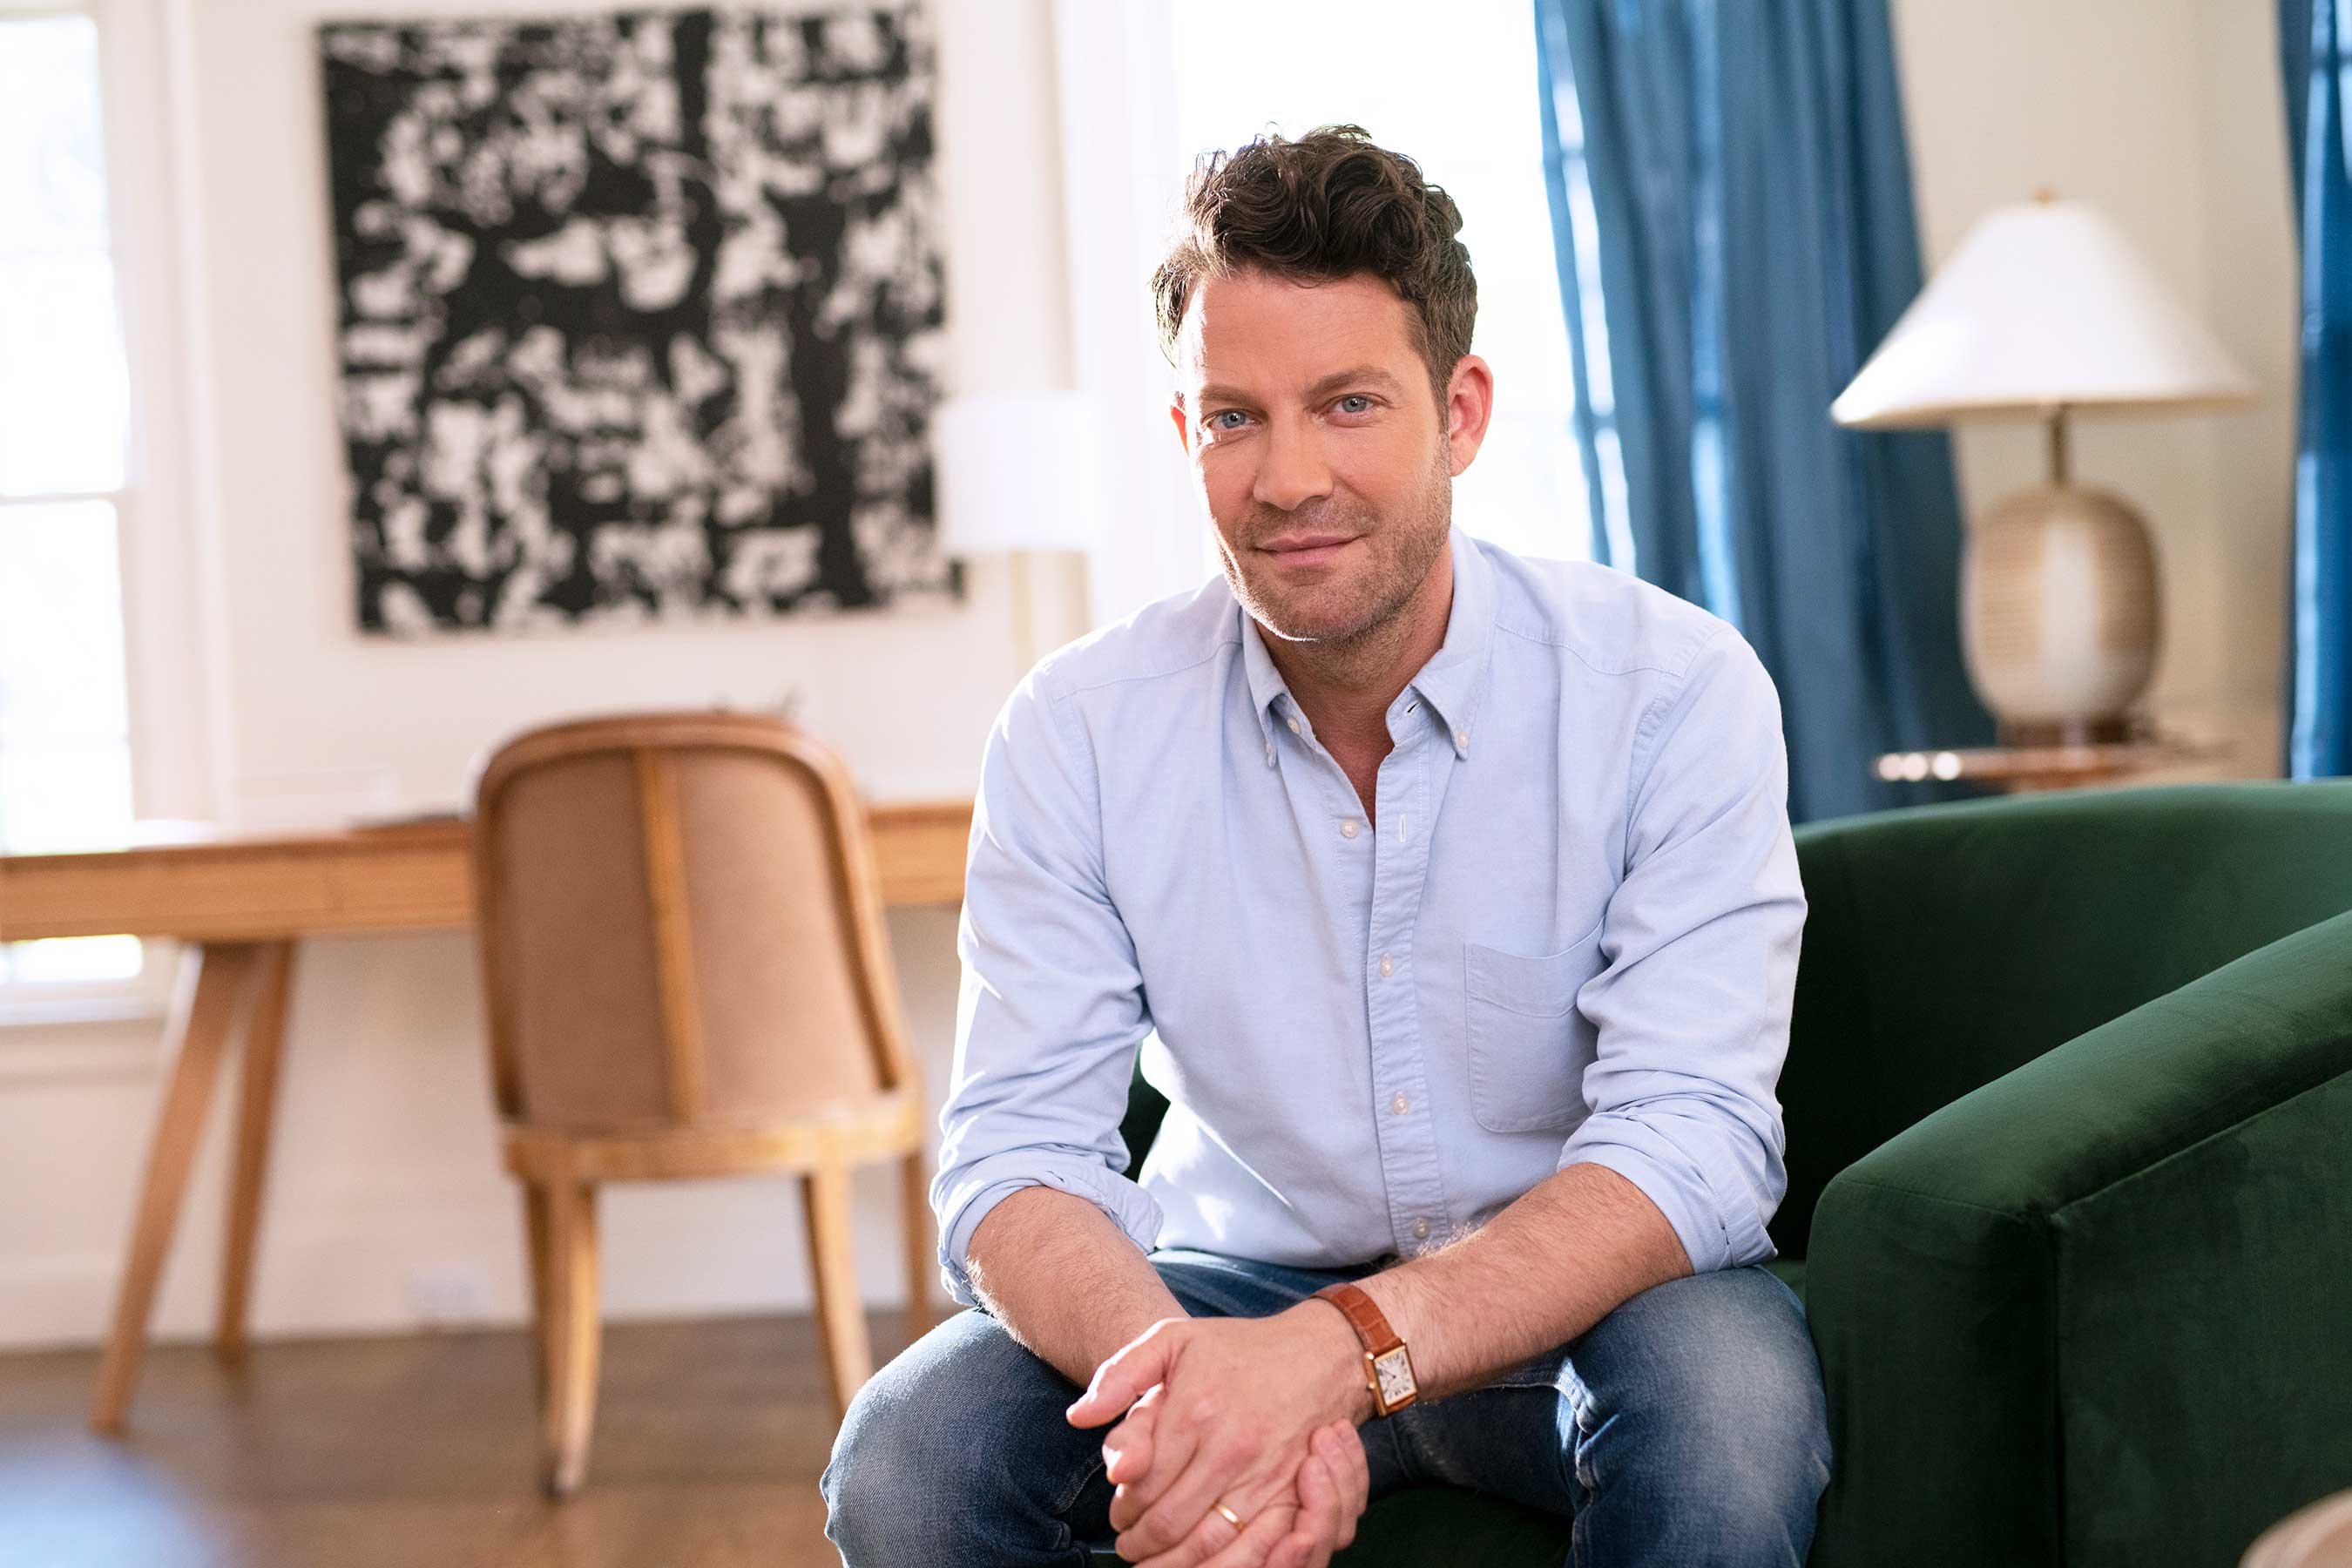 The 20 Most Famous Interior Designers In The Industry Right Now_4 most famous interior designers The 20 Most Famous Interior Designers In The Industry Right Now The 20 Most Famous Interior Designers In The Industry Right Now 4